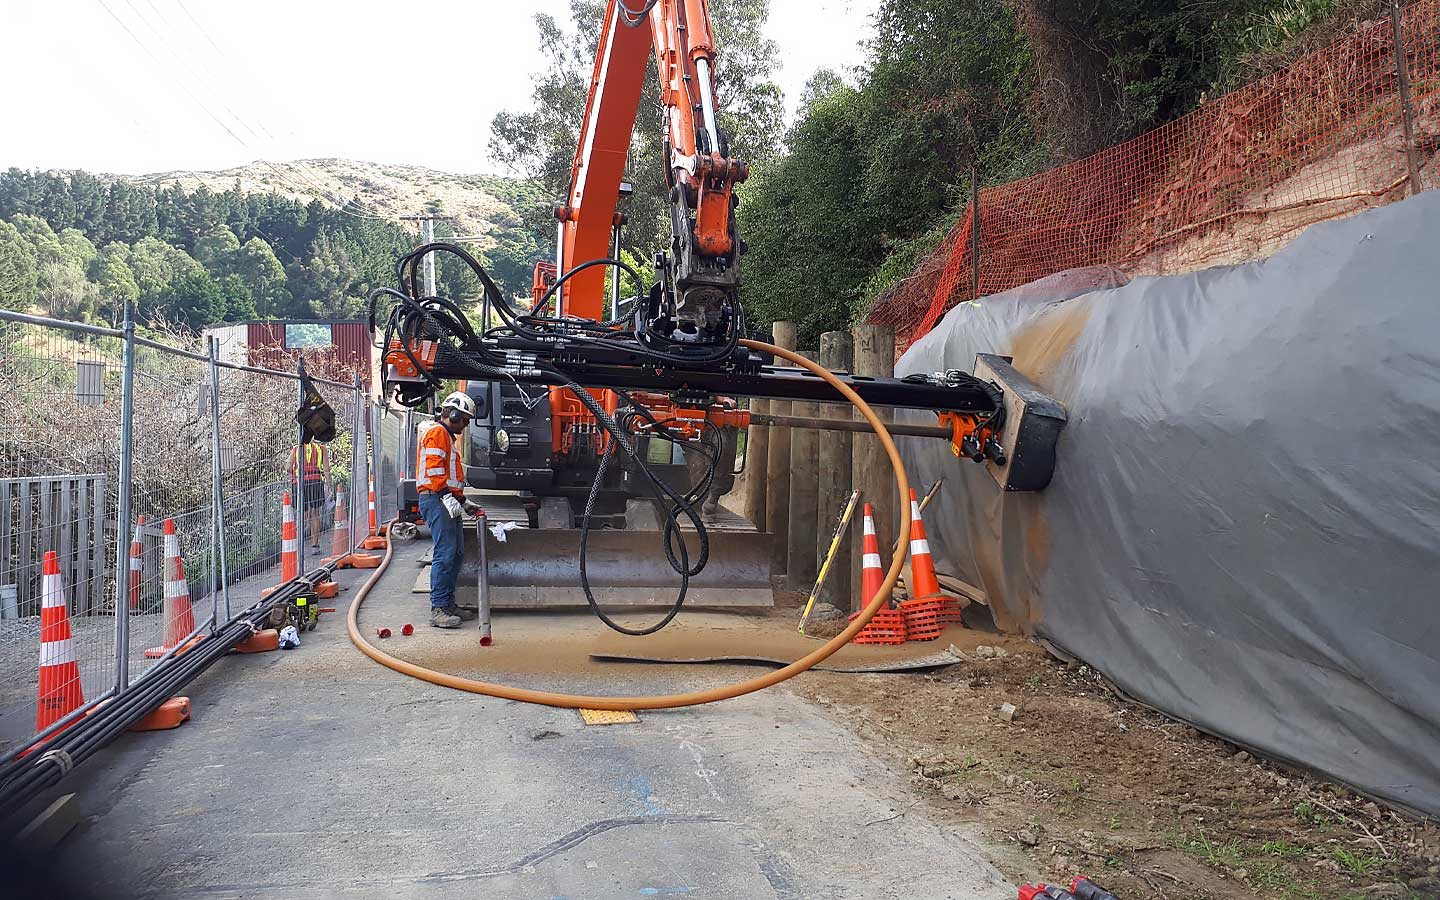 A civil construction retaining wall being installed.